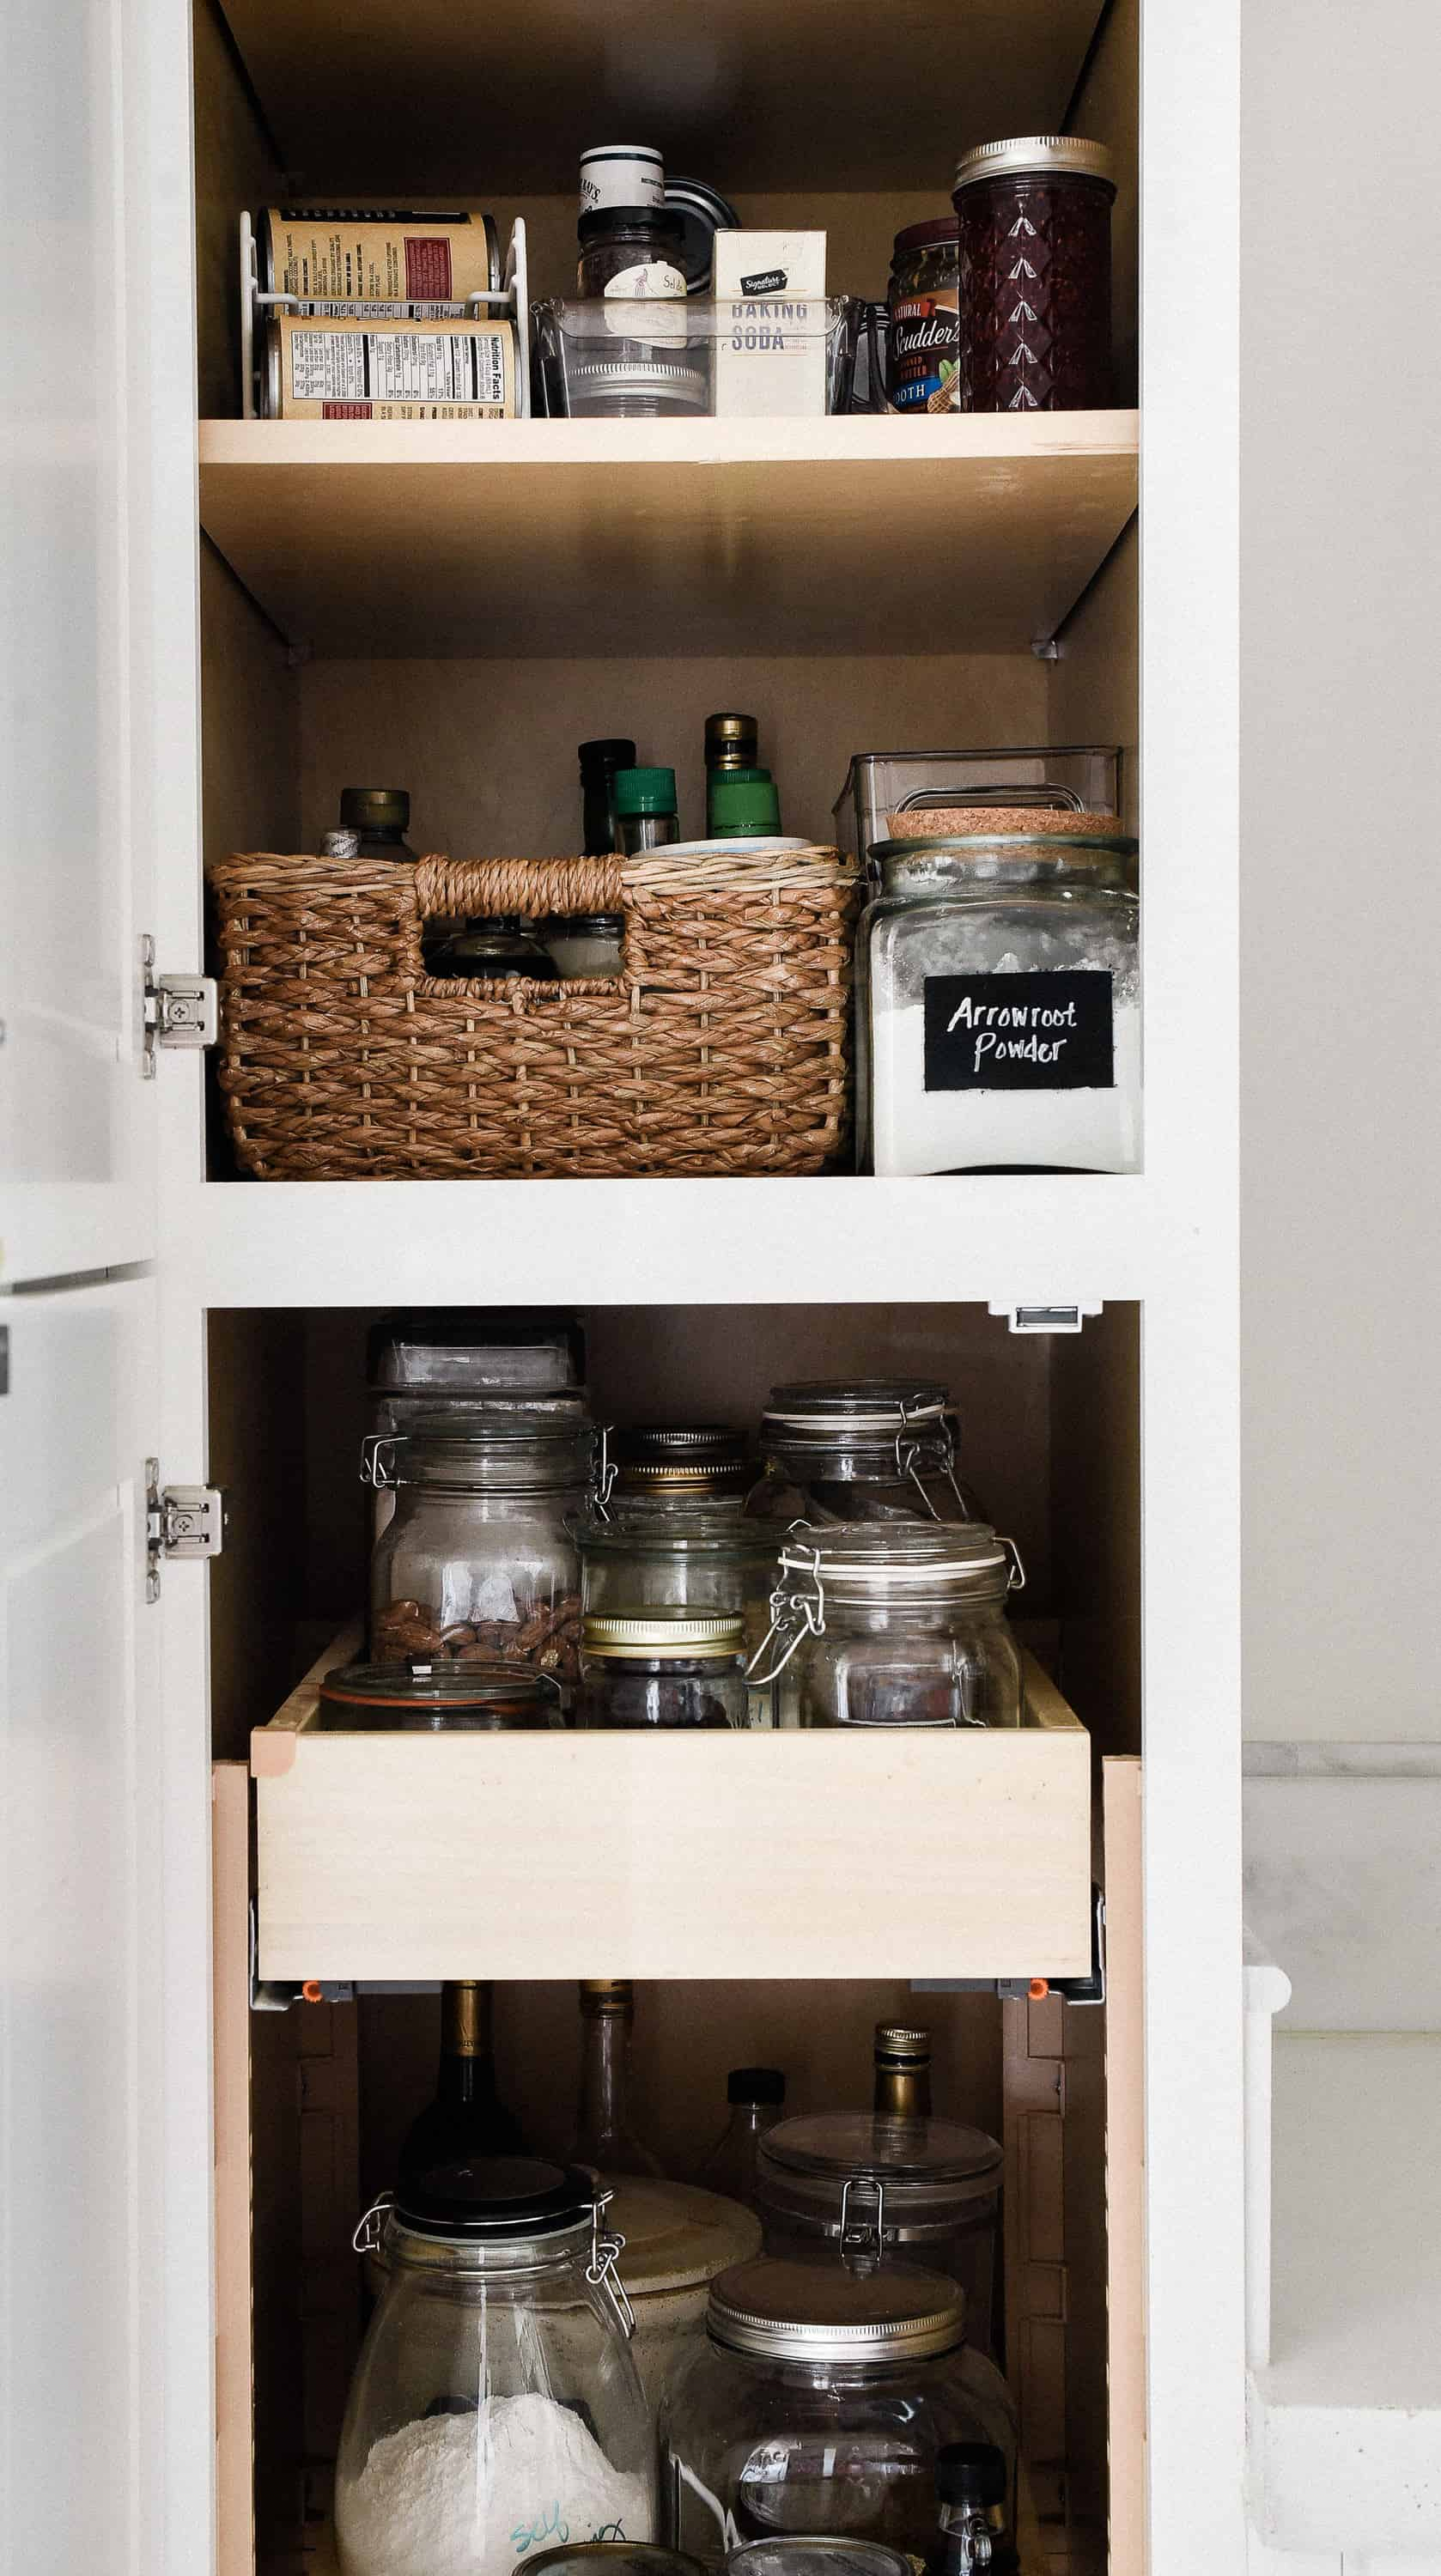 Looking for easy ways to organize your kitchen and home? Use my free printable kitchen cabinet clean-out checklist, and scroll down to get more organization ideas & printables!